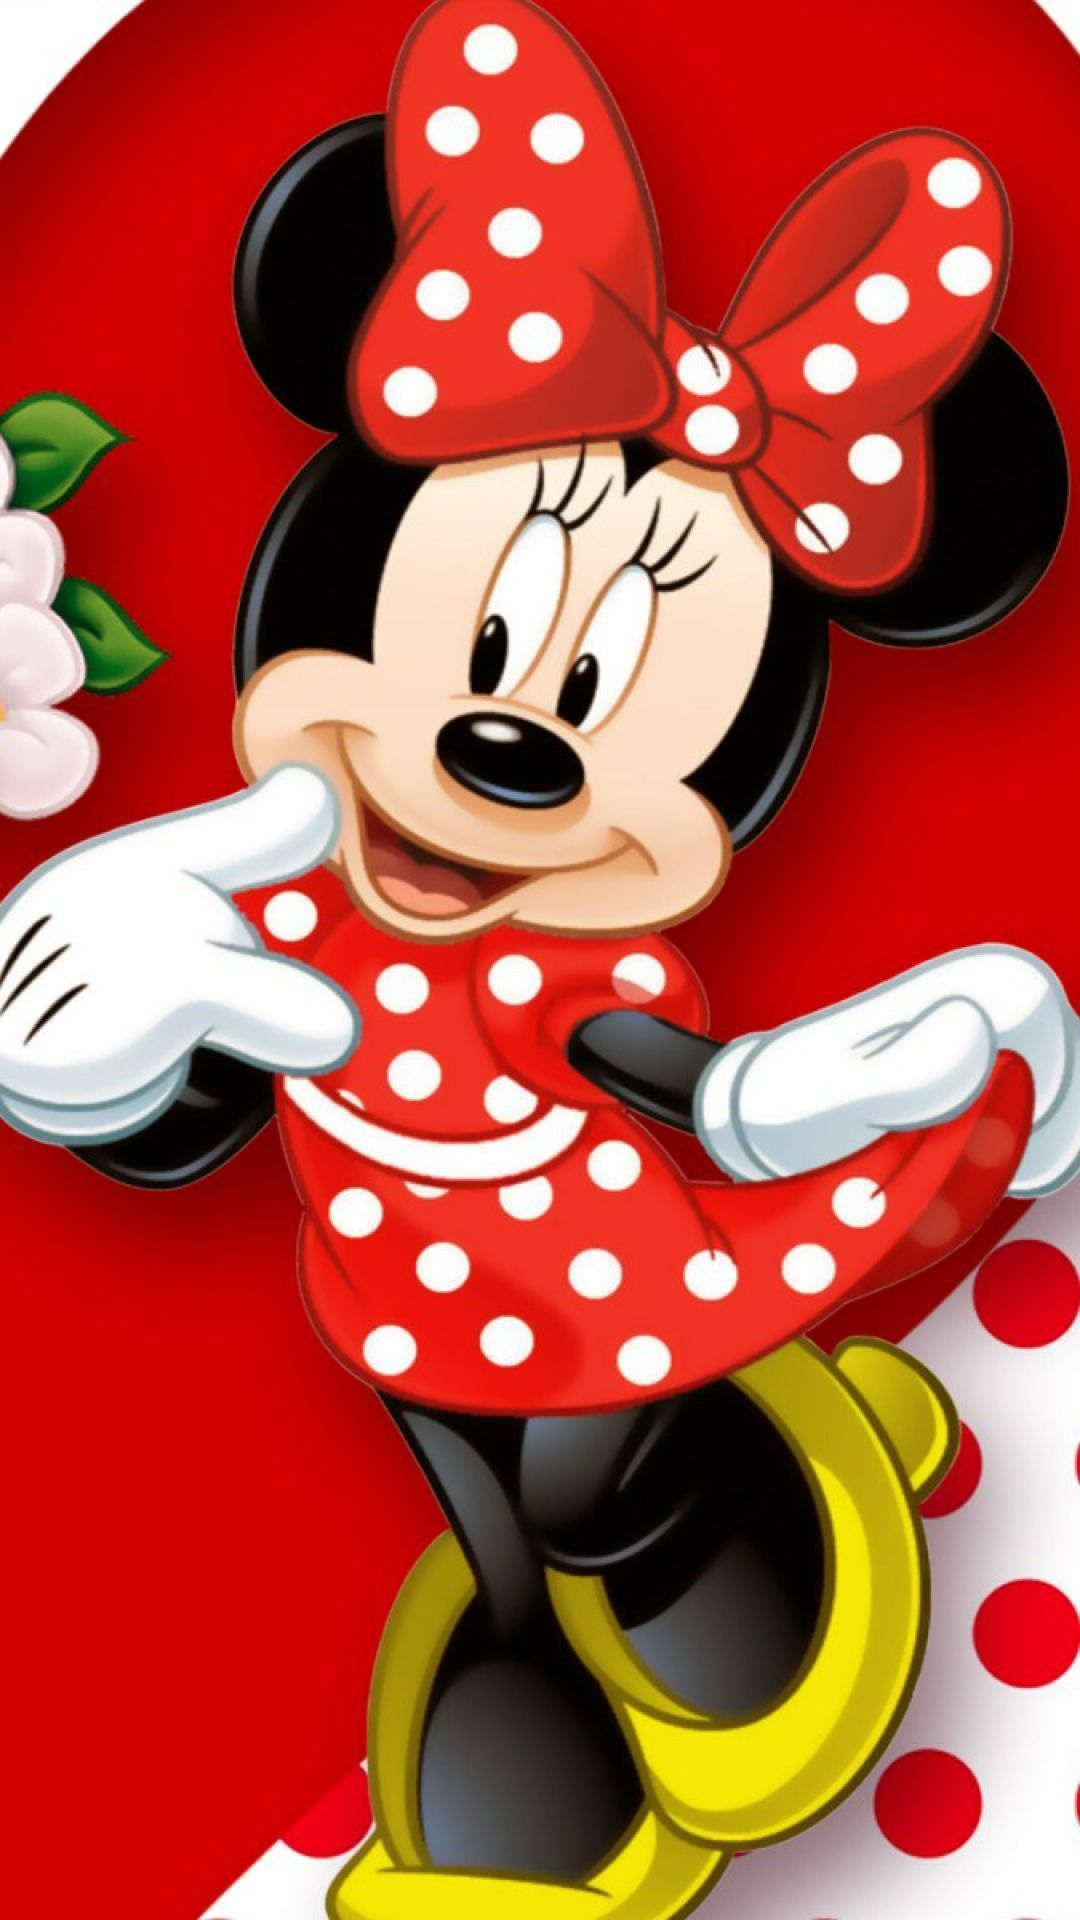 Red Minnie Mouse Wallpapers Top Free Red Minnie Mouse Backgrounds Wallpaperaccess